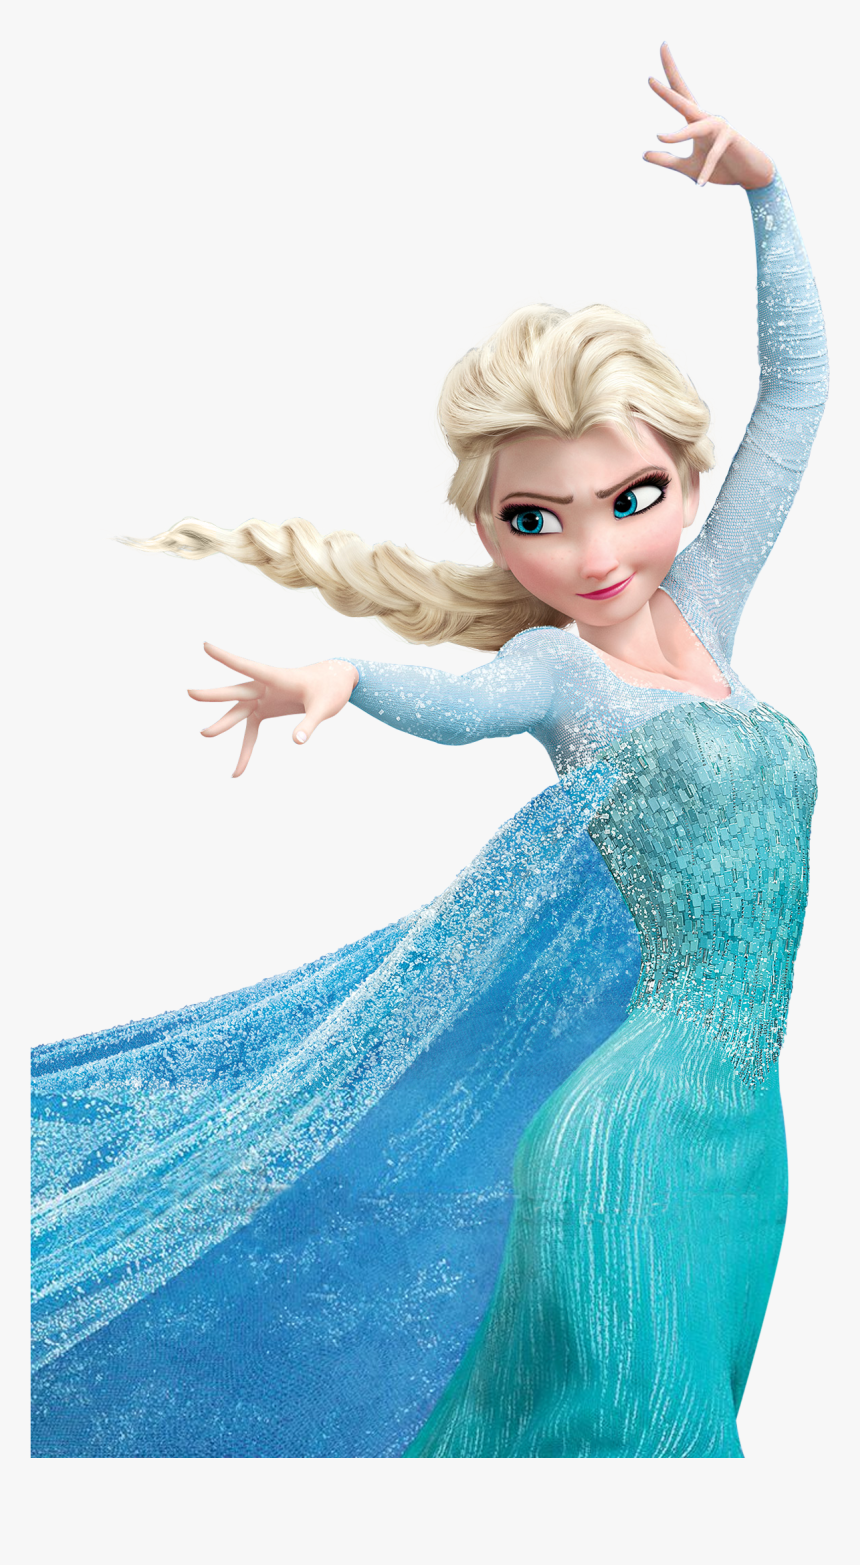 Elsa Frozen Anna Olaf Convite Elsa Frozen High Resolution Hd Png Download Is Free Transparent Png Image To Disney Frozen Elsa Art Elsa Frozen Elsa Pictures